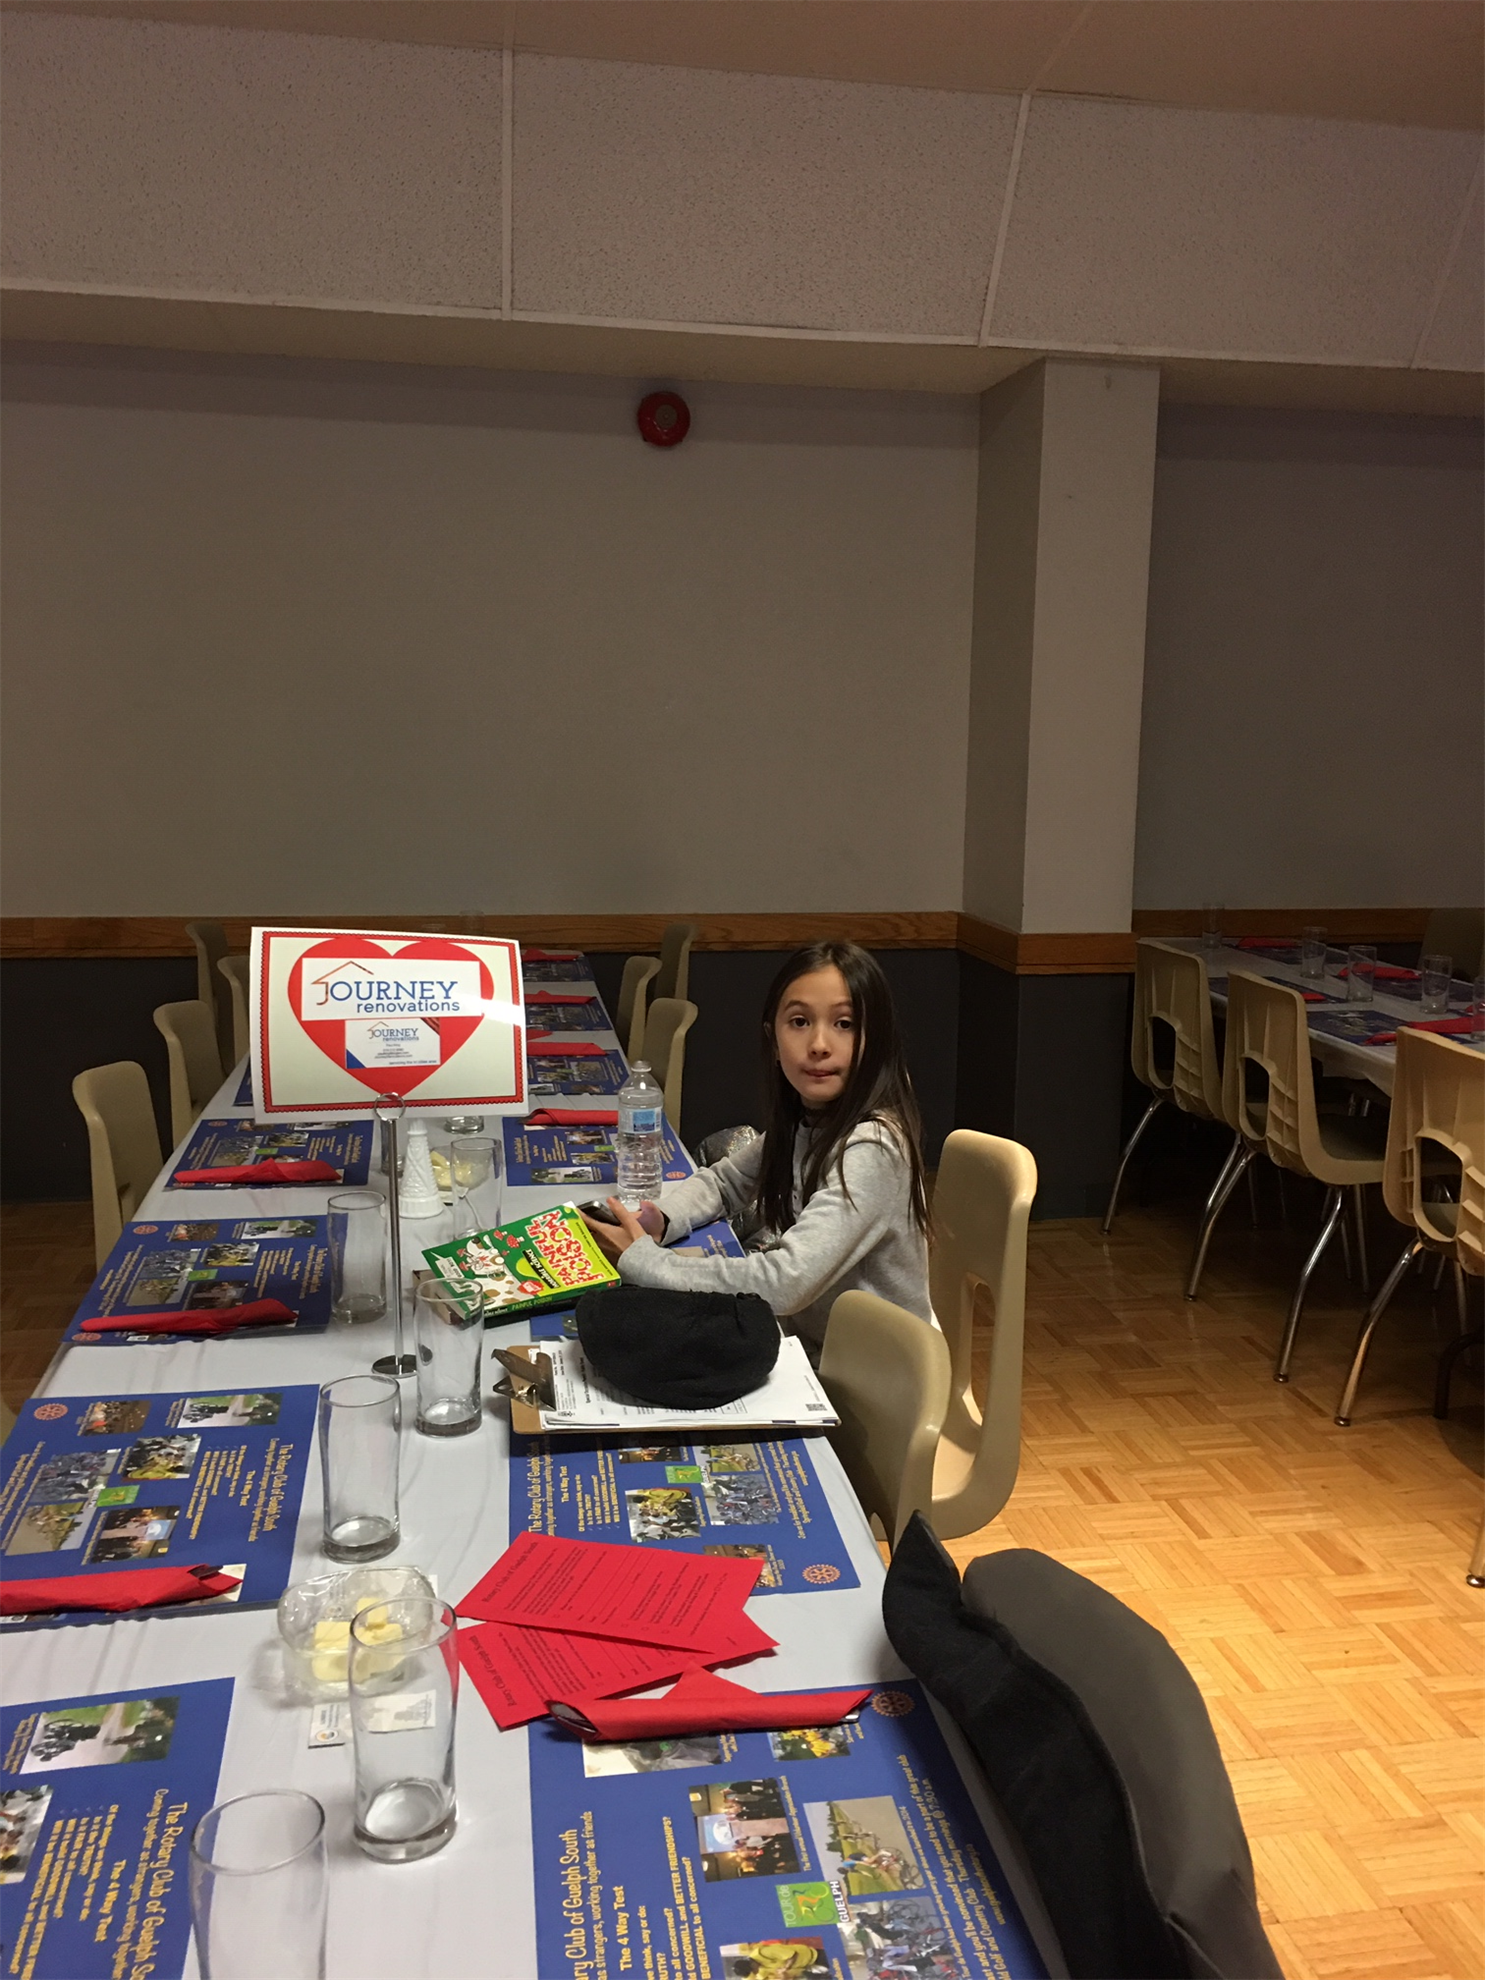 Youngster ready for dinner at the Journey Renovations-sponsored table